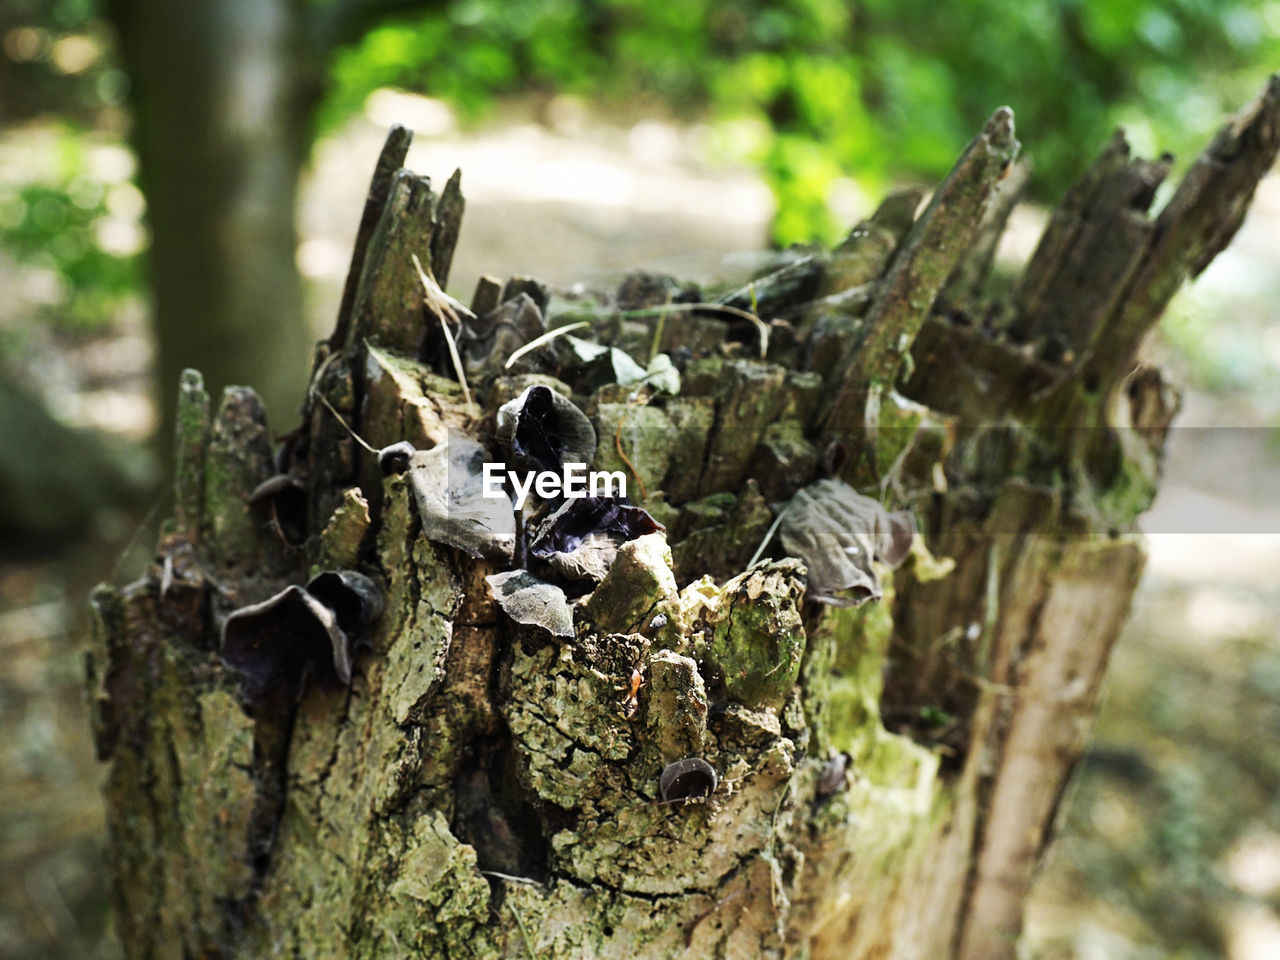 tree, nature, plant, close-up, no people, day, animal wildlife, trunk, focus on foreground, animal, tree trunk, selective focus, animals in the wild, wood - material, animal themes, land, outdoors, bark, growth, textured